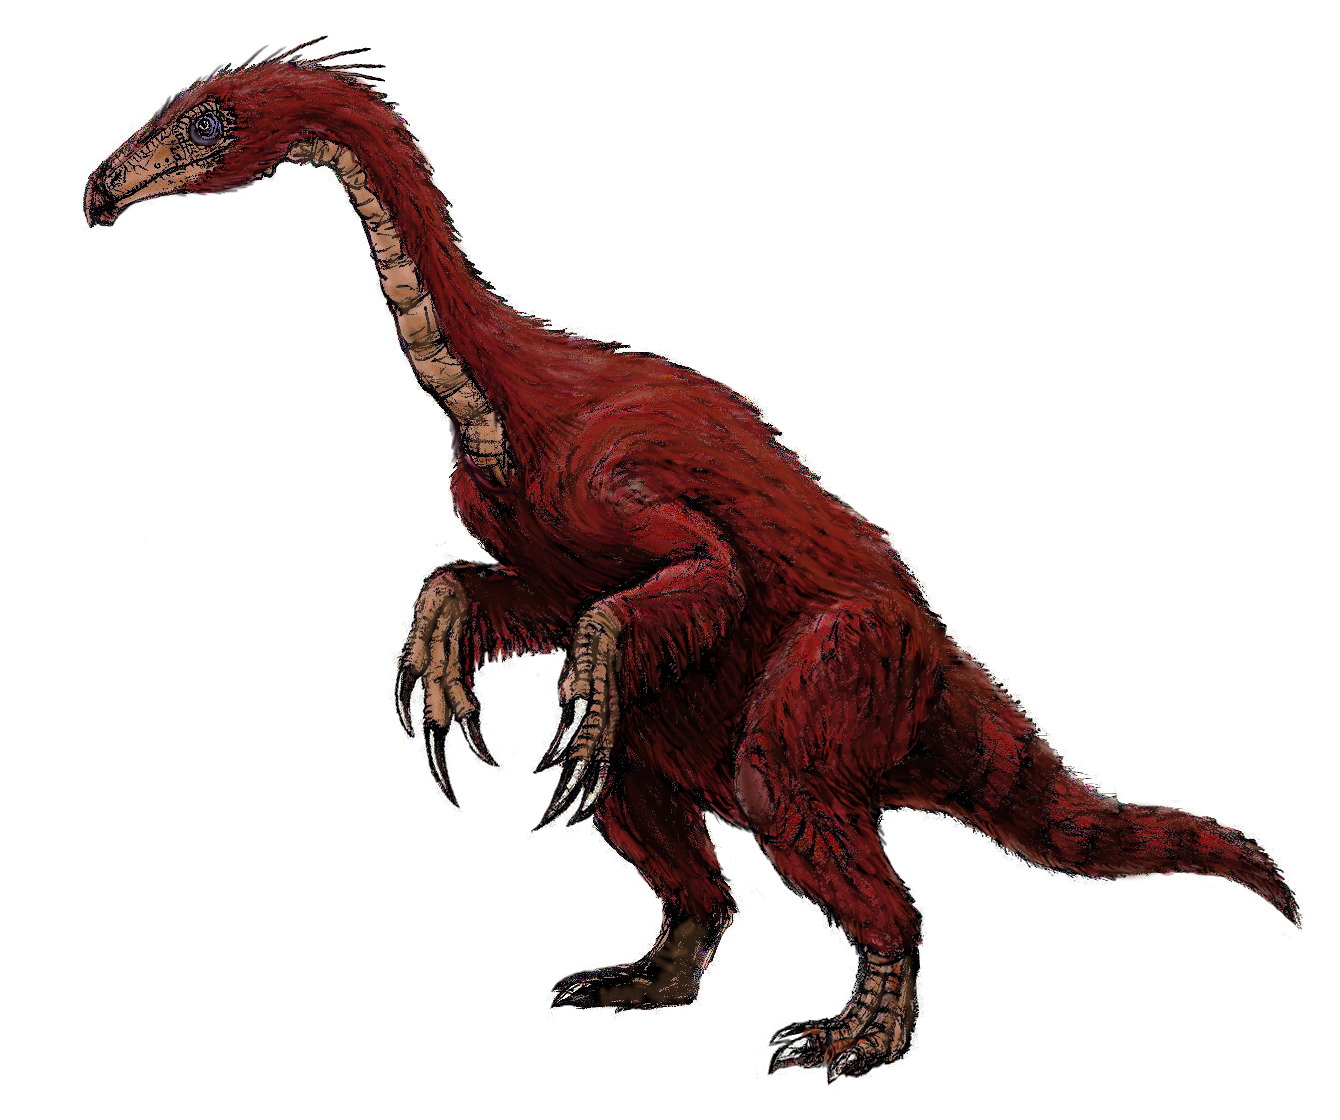 File:Segnosaurus.jpg